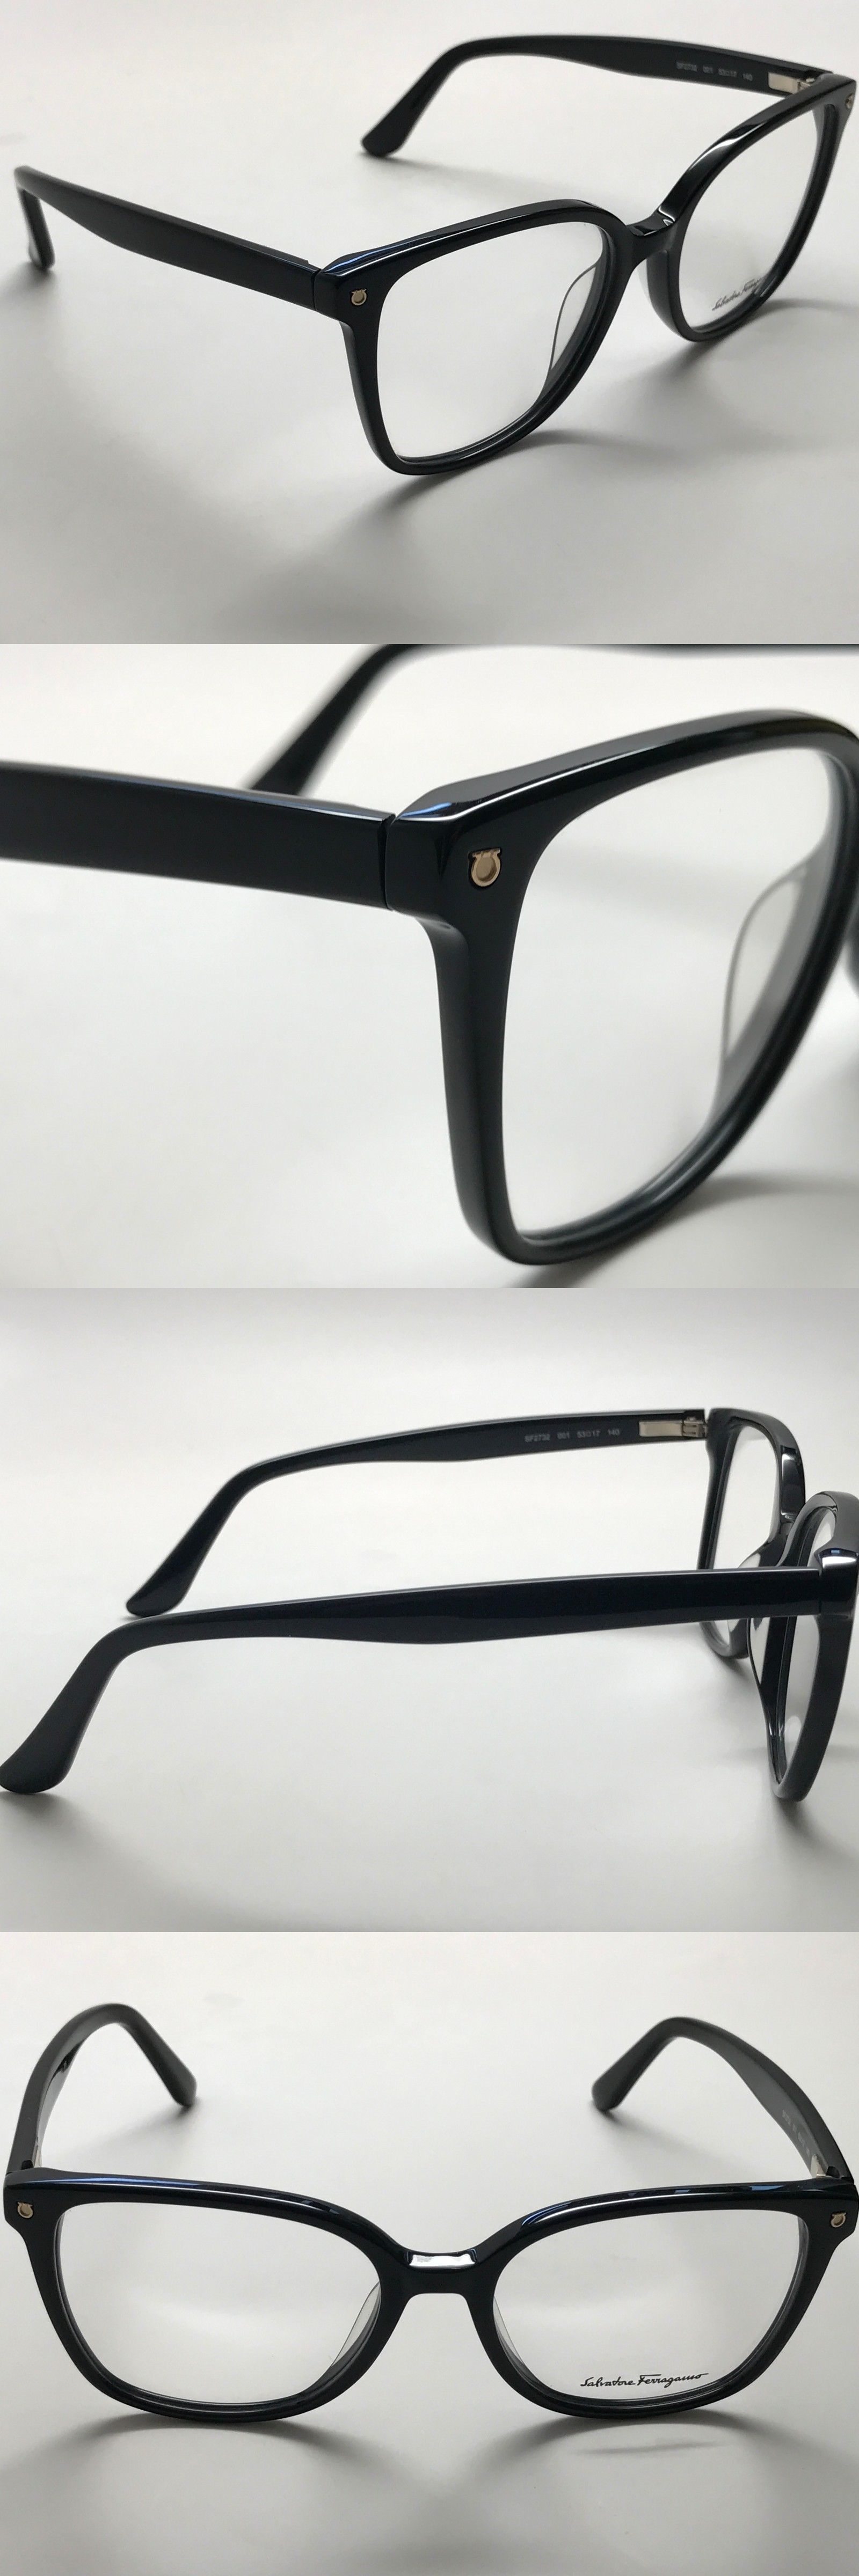 Fashion Eyewear Clear Glasses 179244: Salvatore Ferragamo Rx Black ...